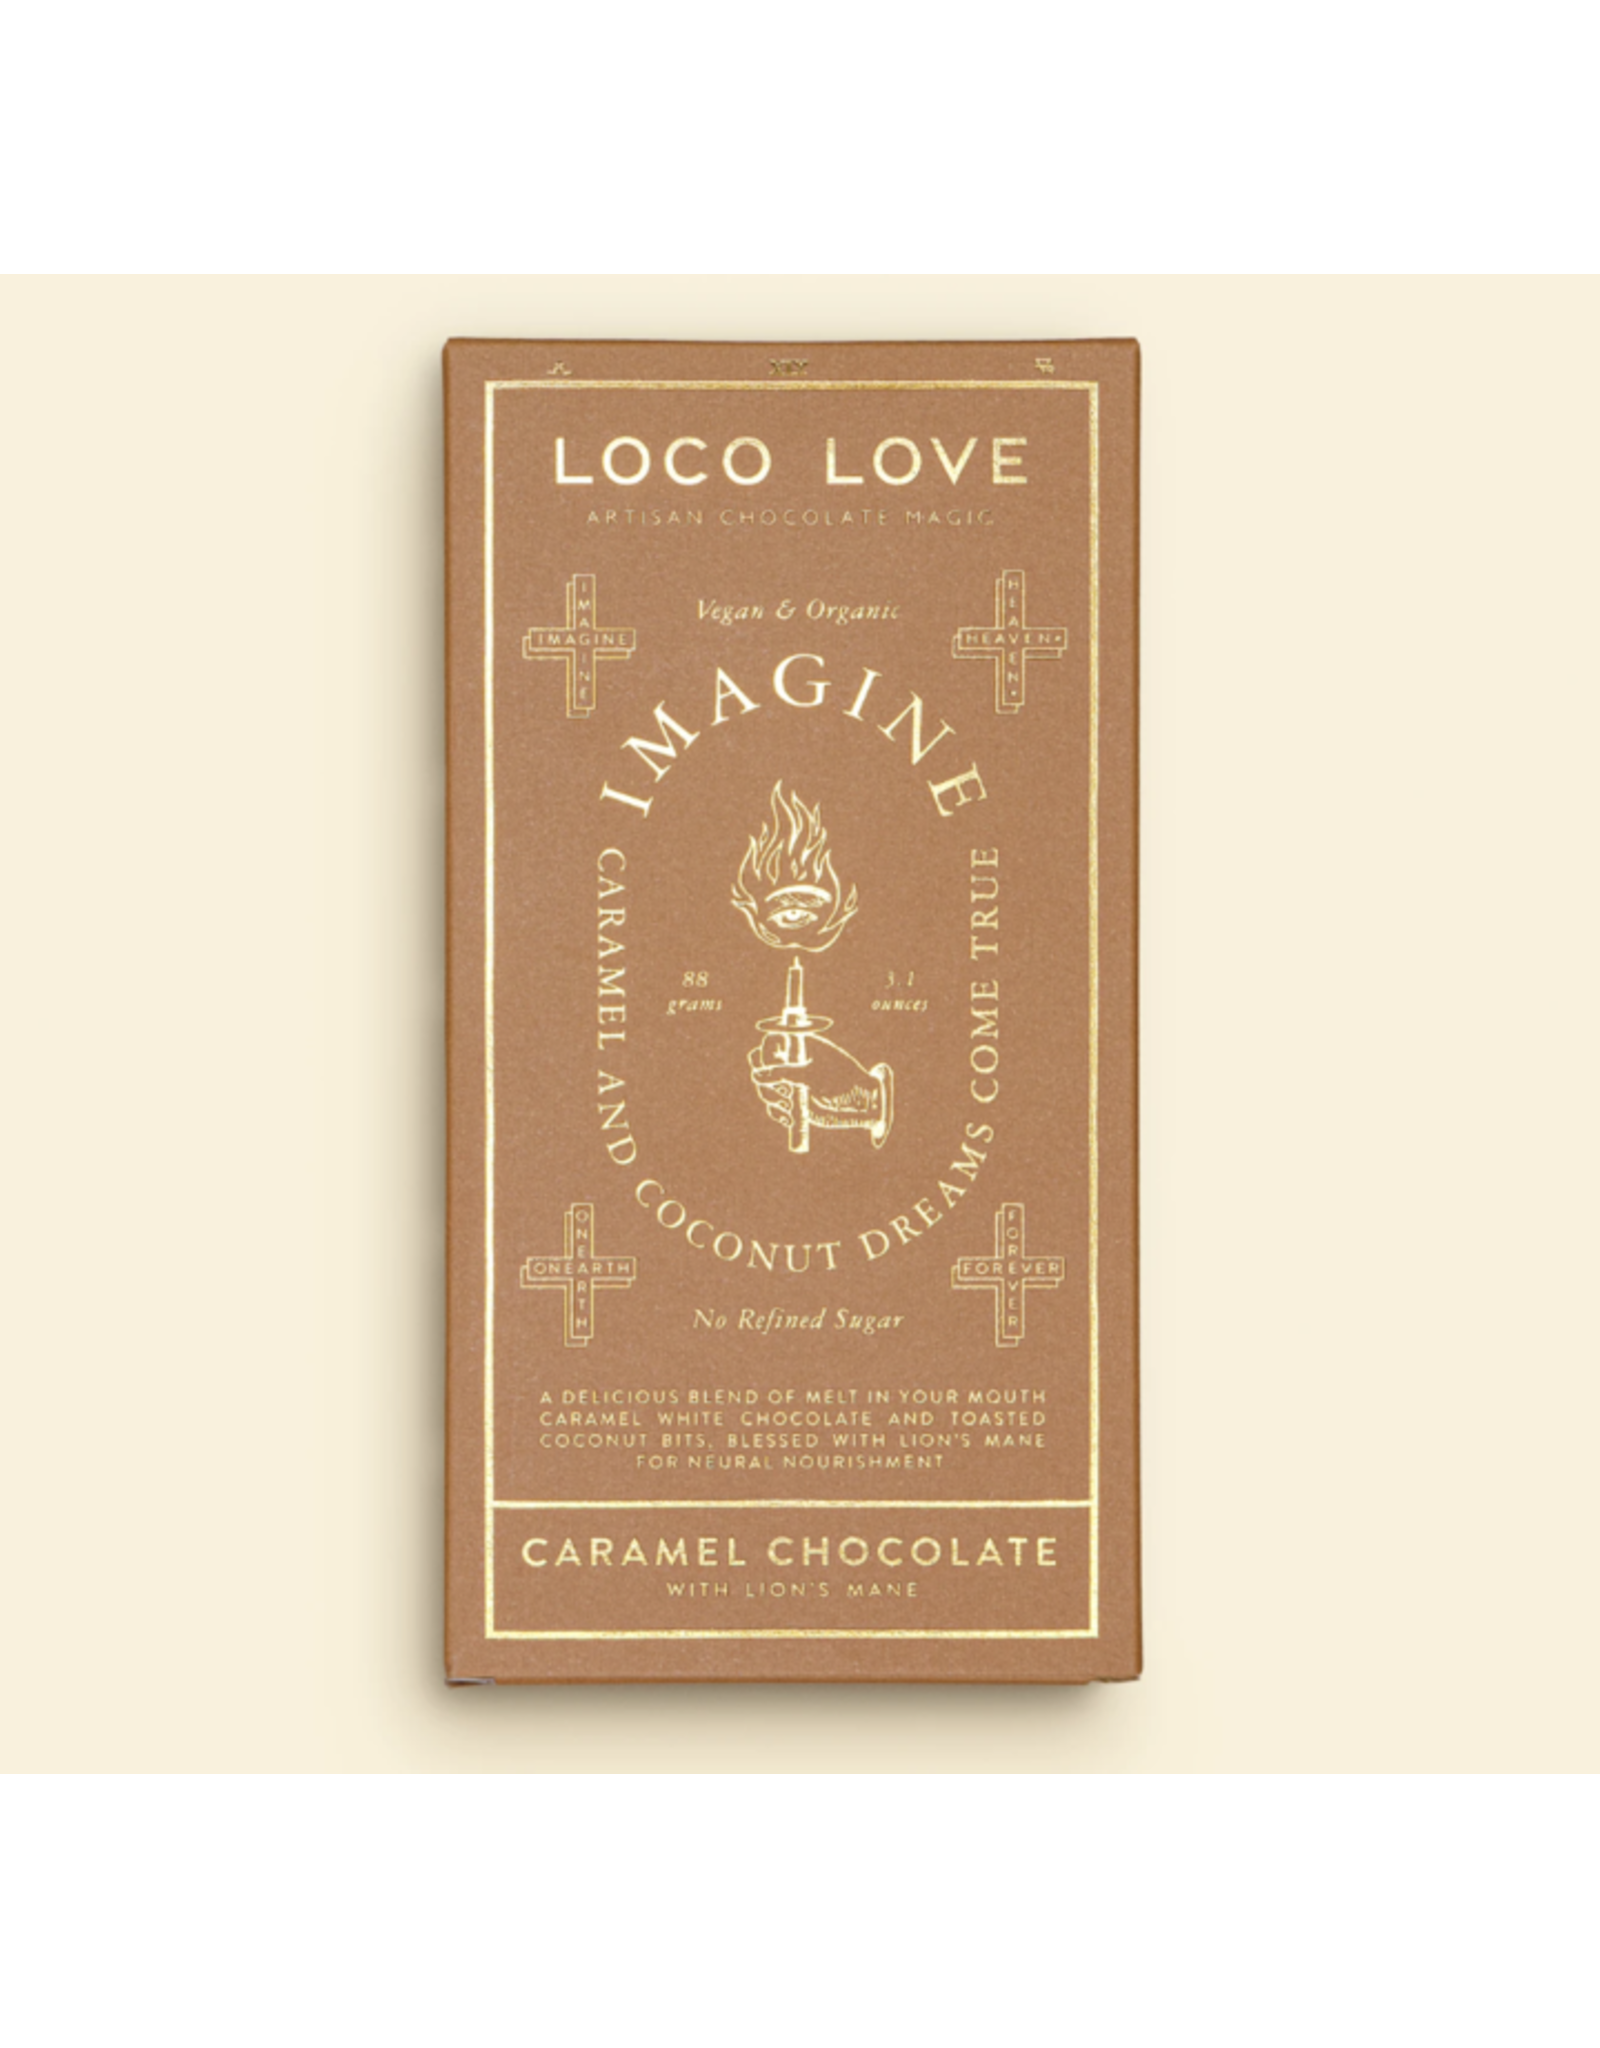 Loco Love Imagine - Caramel Chocolate with Lion's Mane - 88g